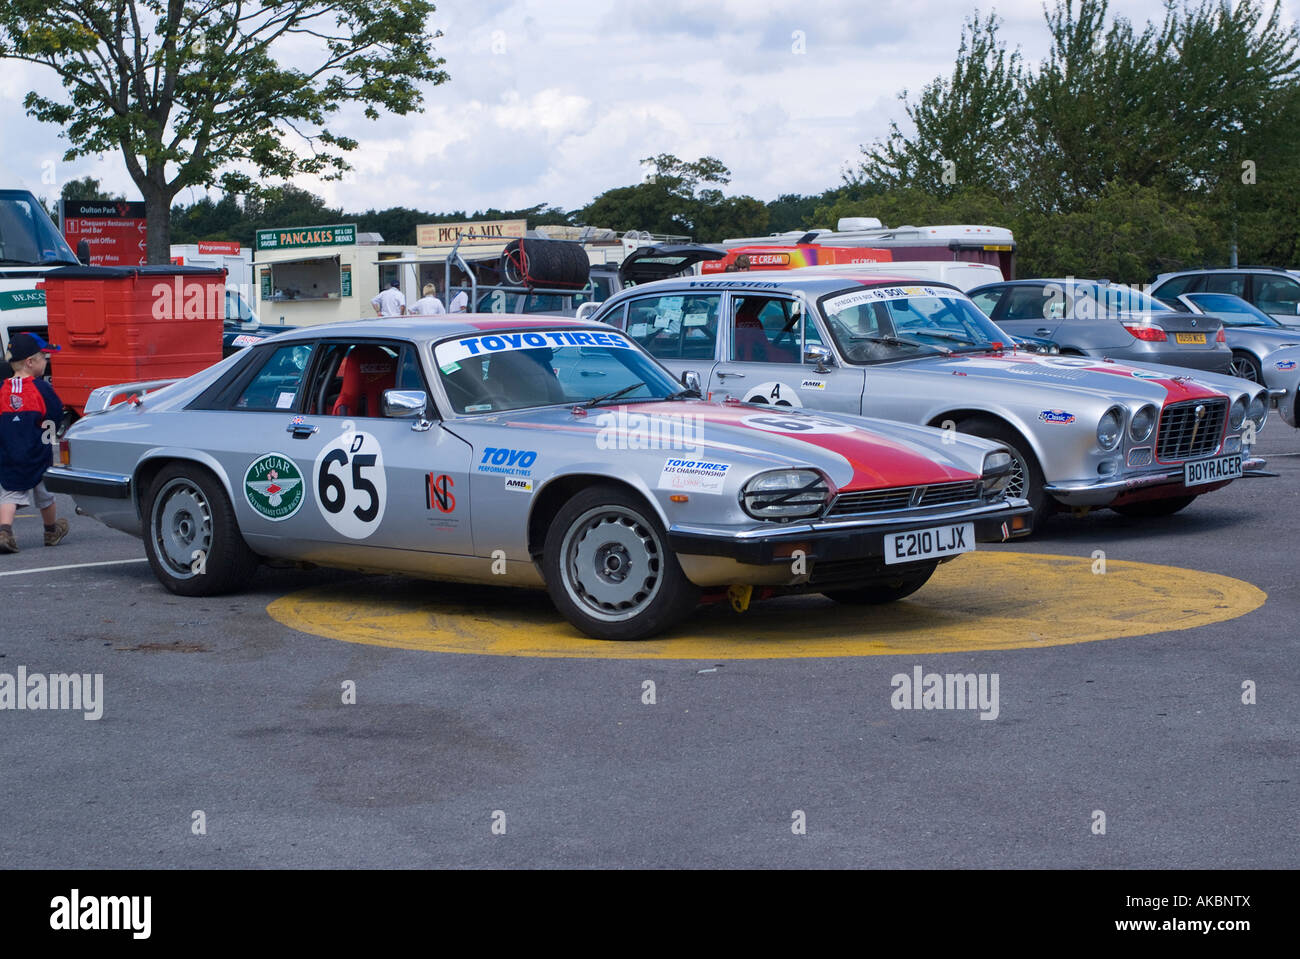 S Type and XJ6 Jaguar Saloon Racing Cars in Paddock at Oulton Park Motor Racing Circuit Cheshire United Kingdom Stock Photo